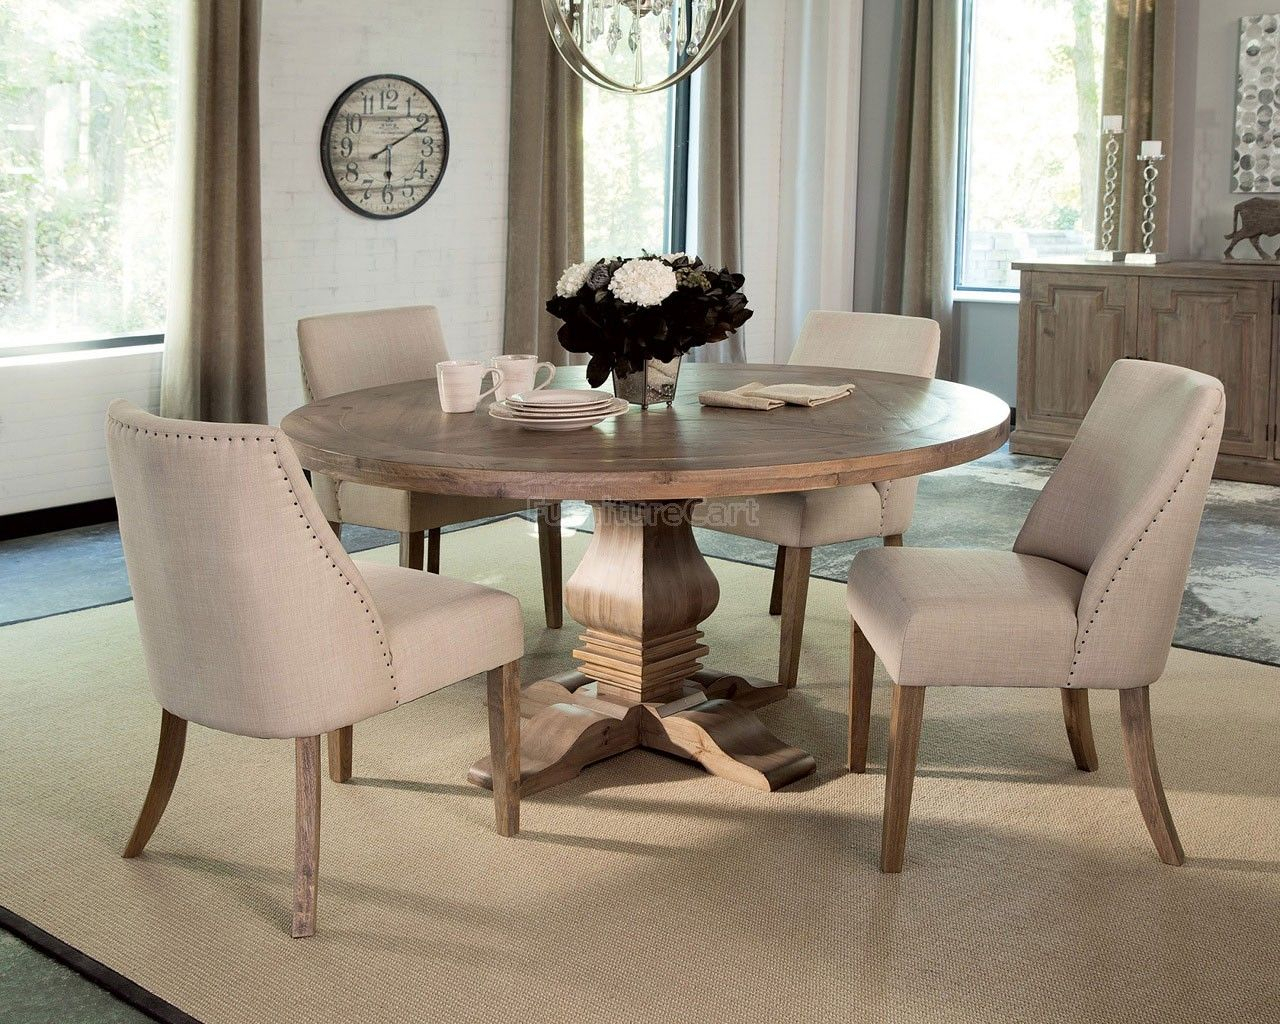 Florence+Round+Dining+Set+W/+Beige+Chairs | Round Dining Regarding Aime Upholstered Parsons Chairs In Beige (View 15 of 15)